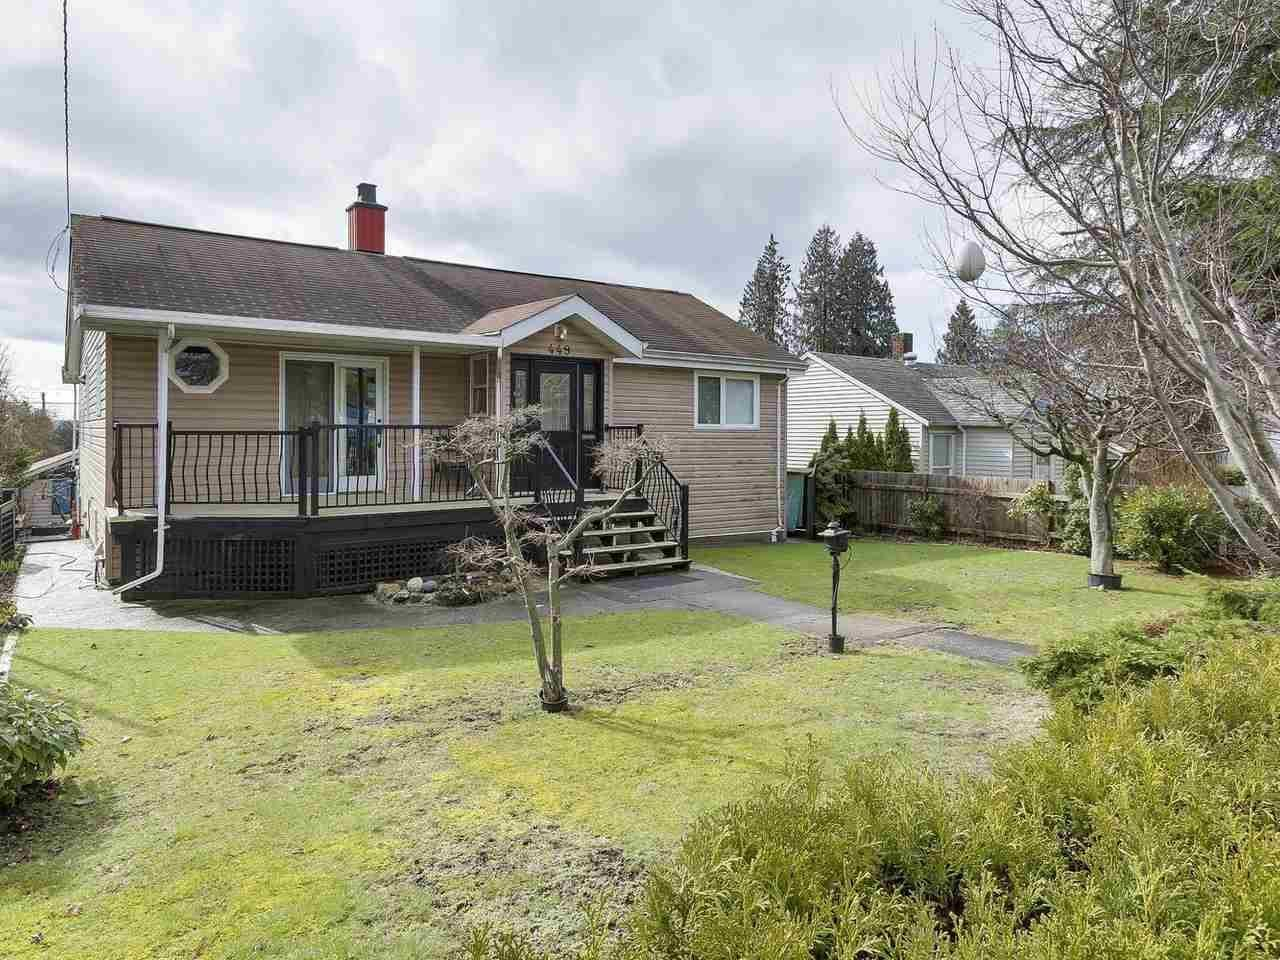 R2145995 - 449 E 5TH STREET, Lower Lonsdale, North Vancouver, BC - House/Single Family